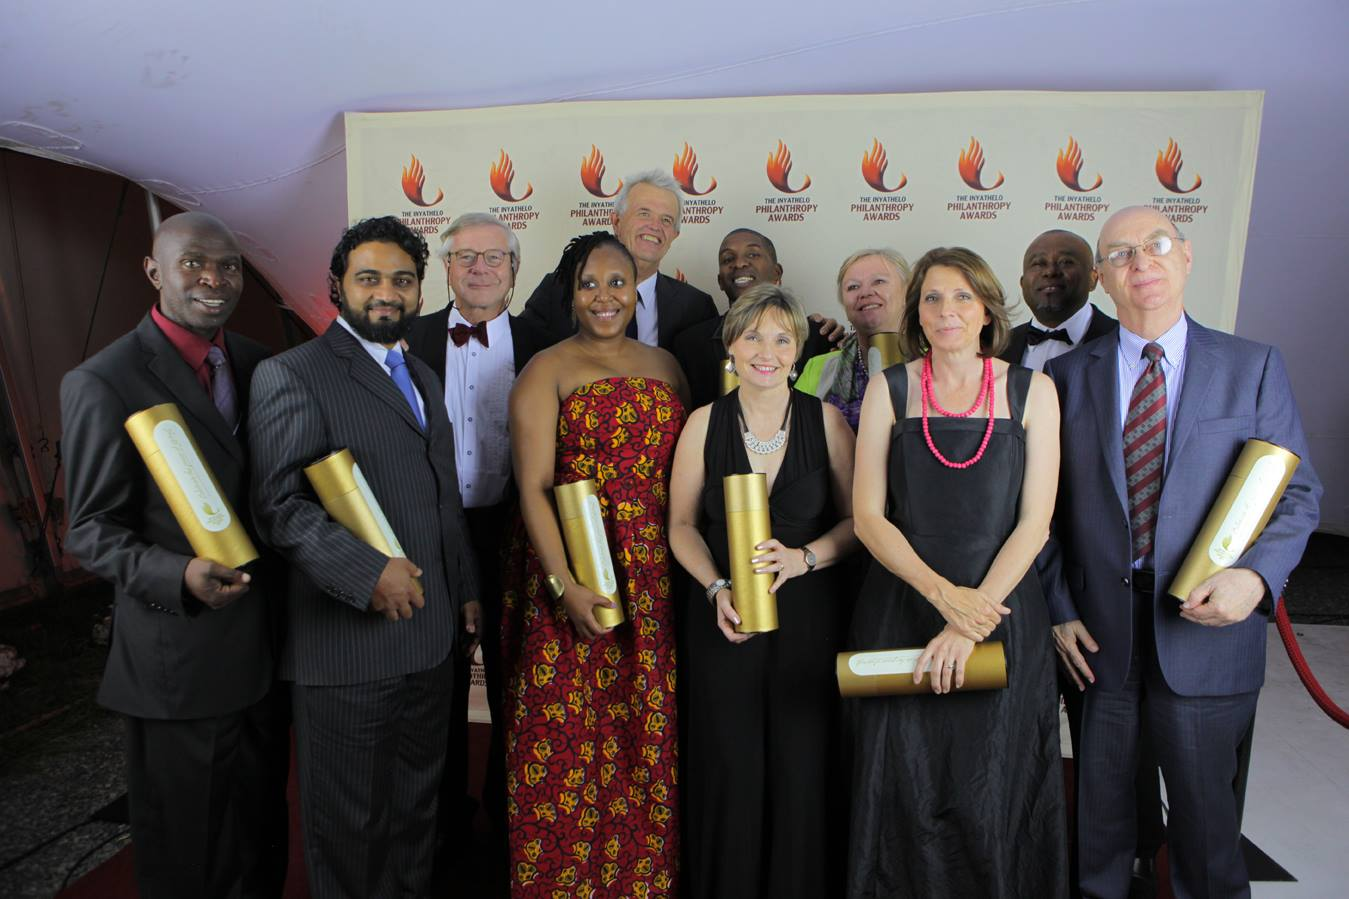 PHILANTHROPY HEROES HONOURED AT INYATHELO AWARDS